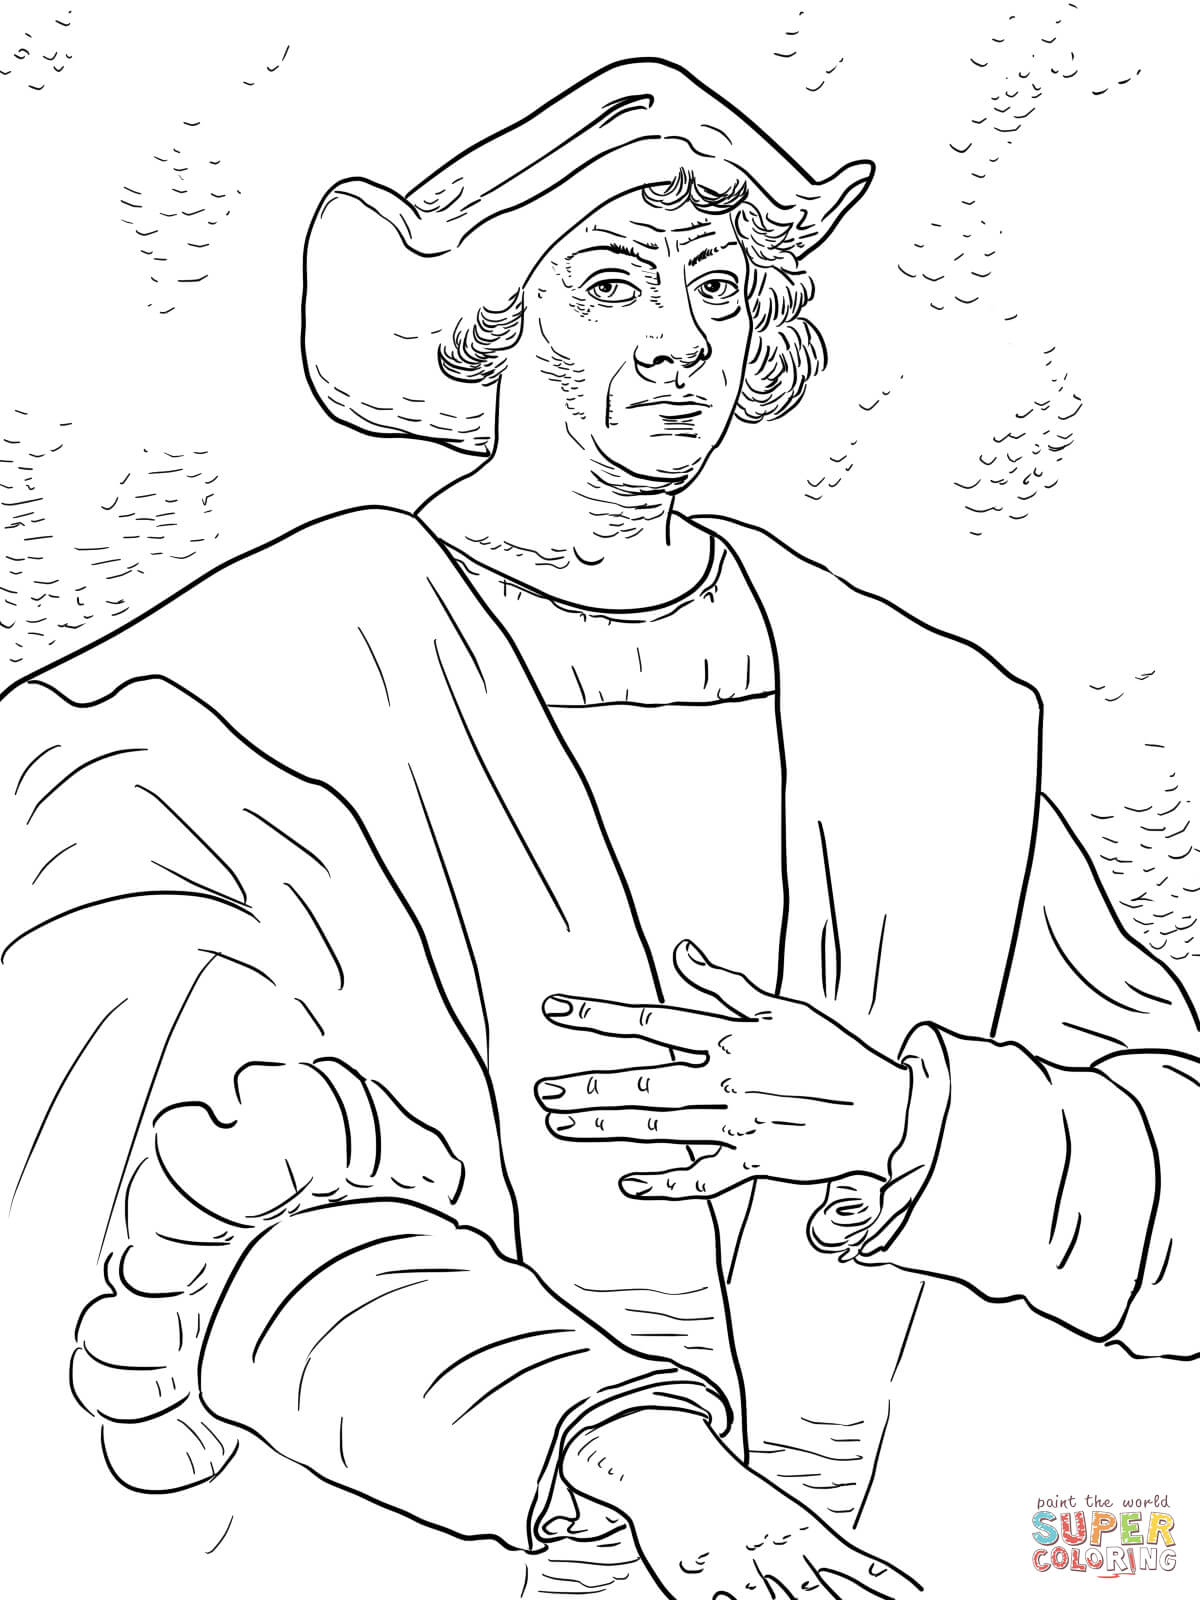 Christopher Columbus Coloring Page   Free Printable Coloring Pages - Free Printable Christopher Columbus Coloring Pages